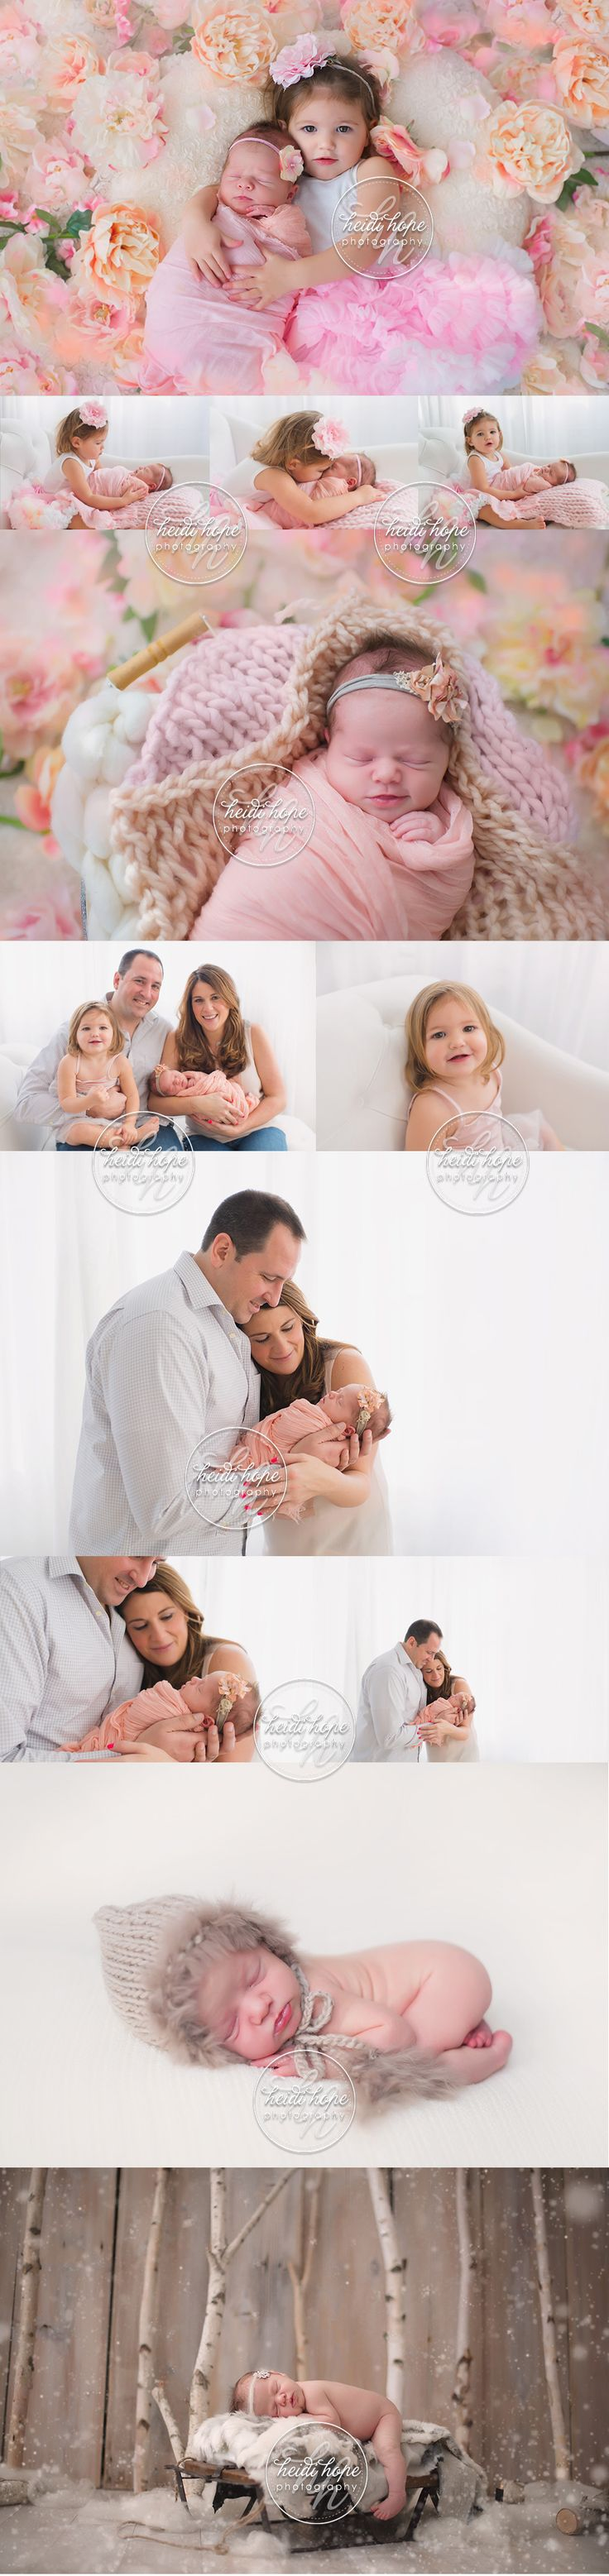 Family | Siblings | Newborn | Sisters | Floral | Girly | Blog | Heidi Hope Photography